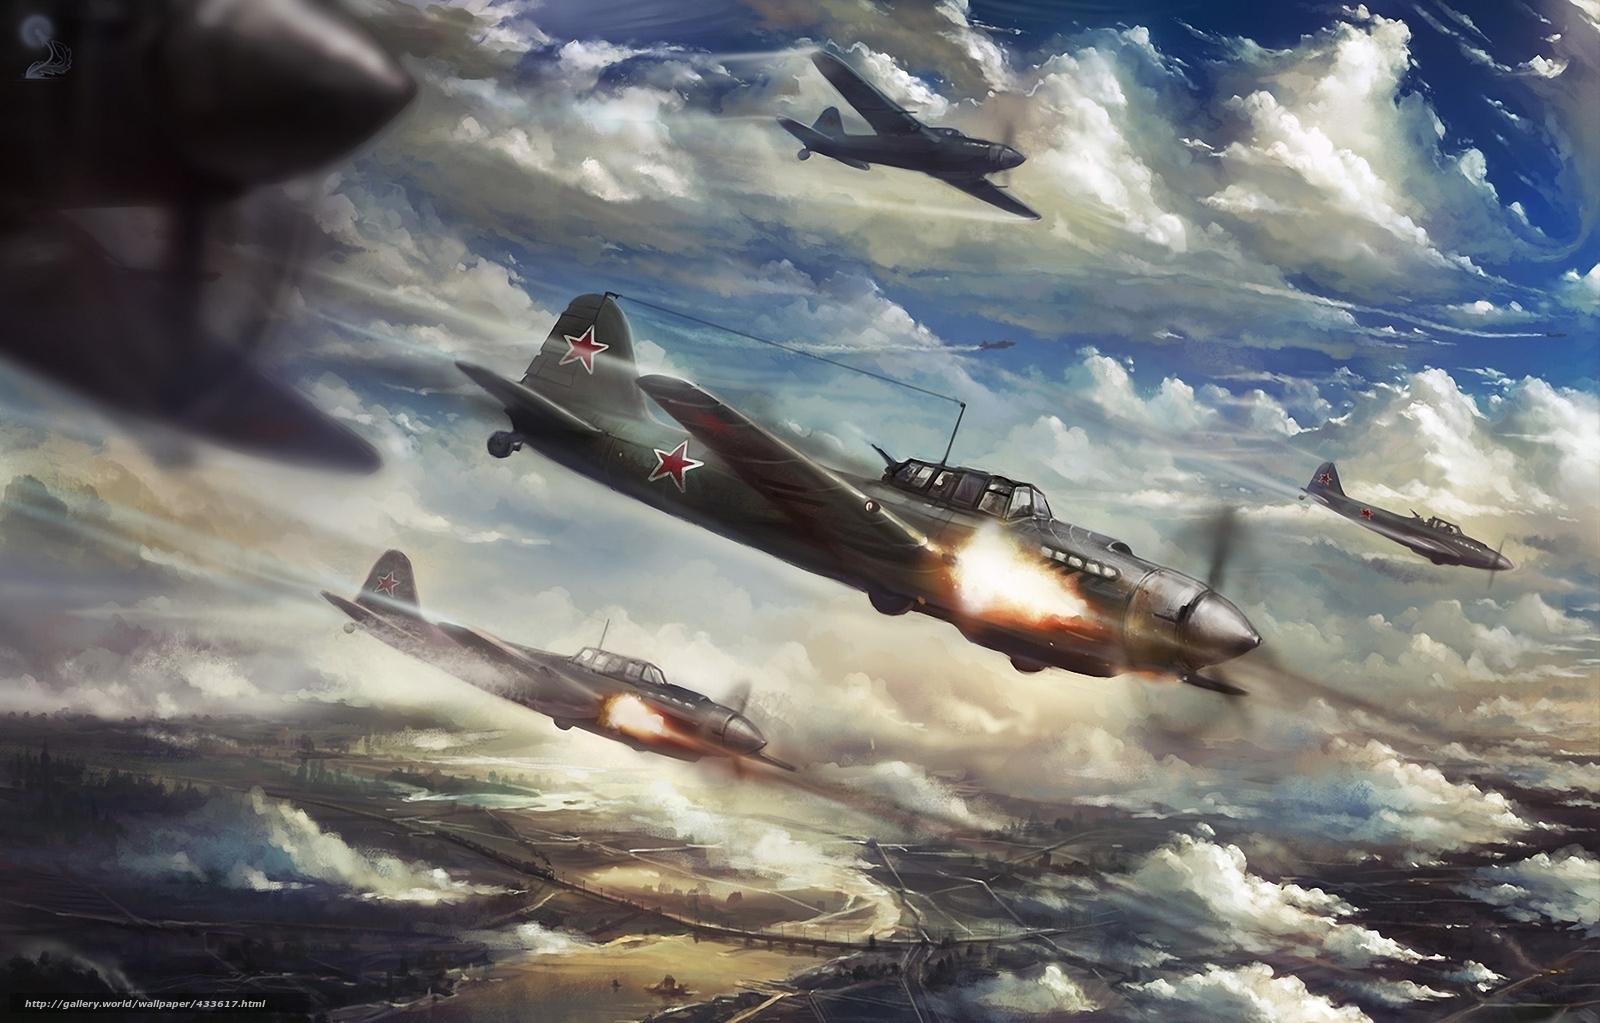 Download wallpaper art aircraft world war ii city free - World war 2 desktop wallpaper ...